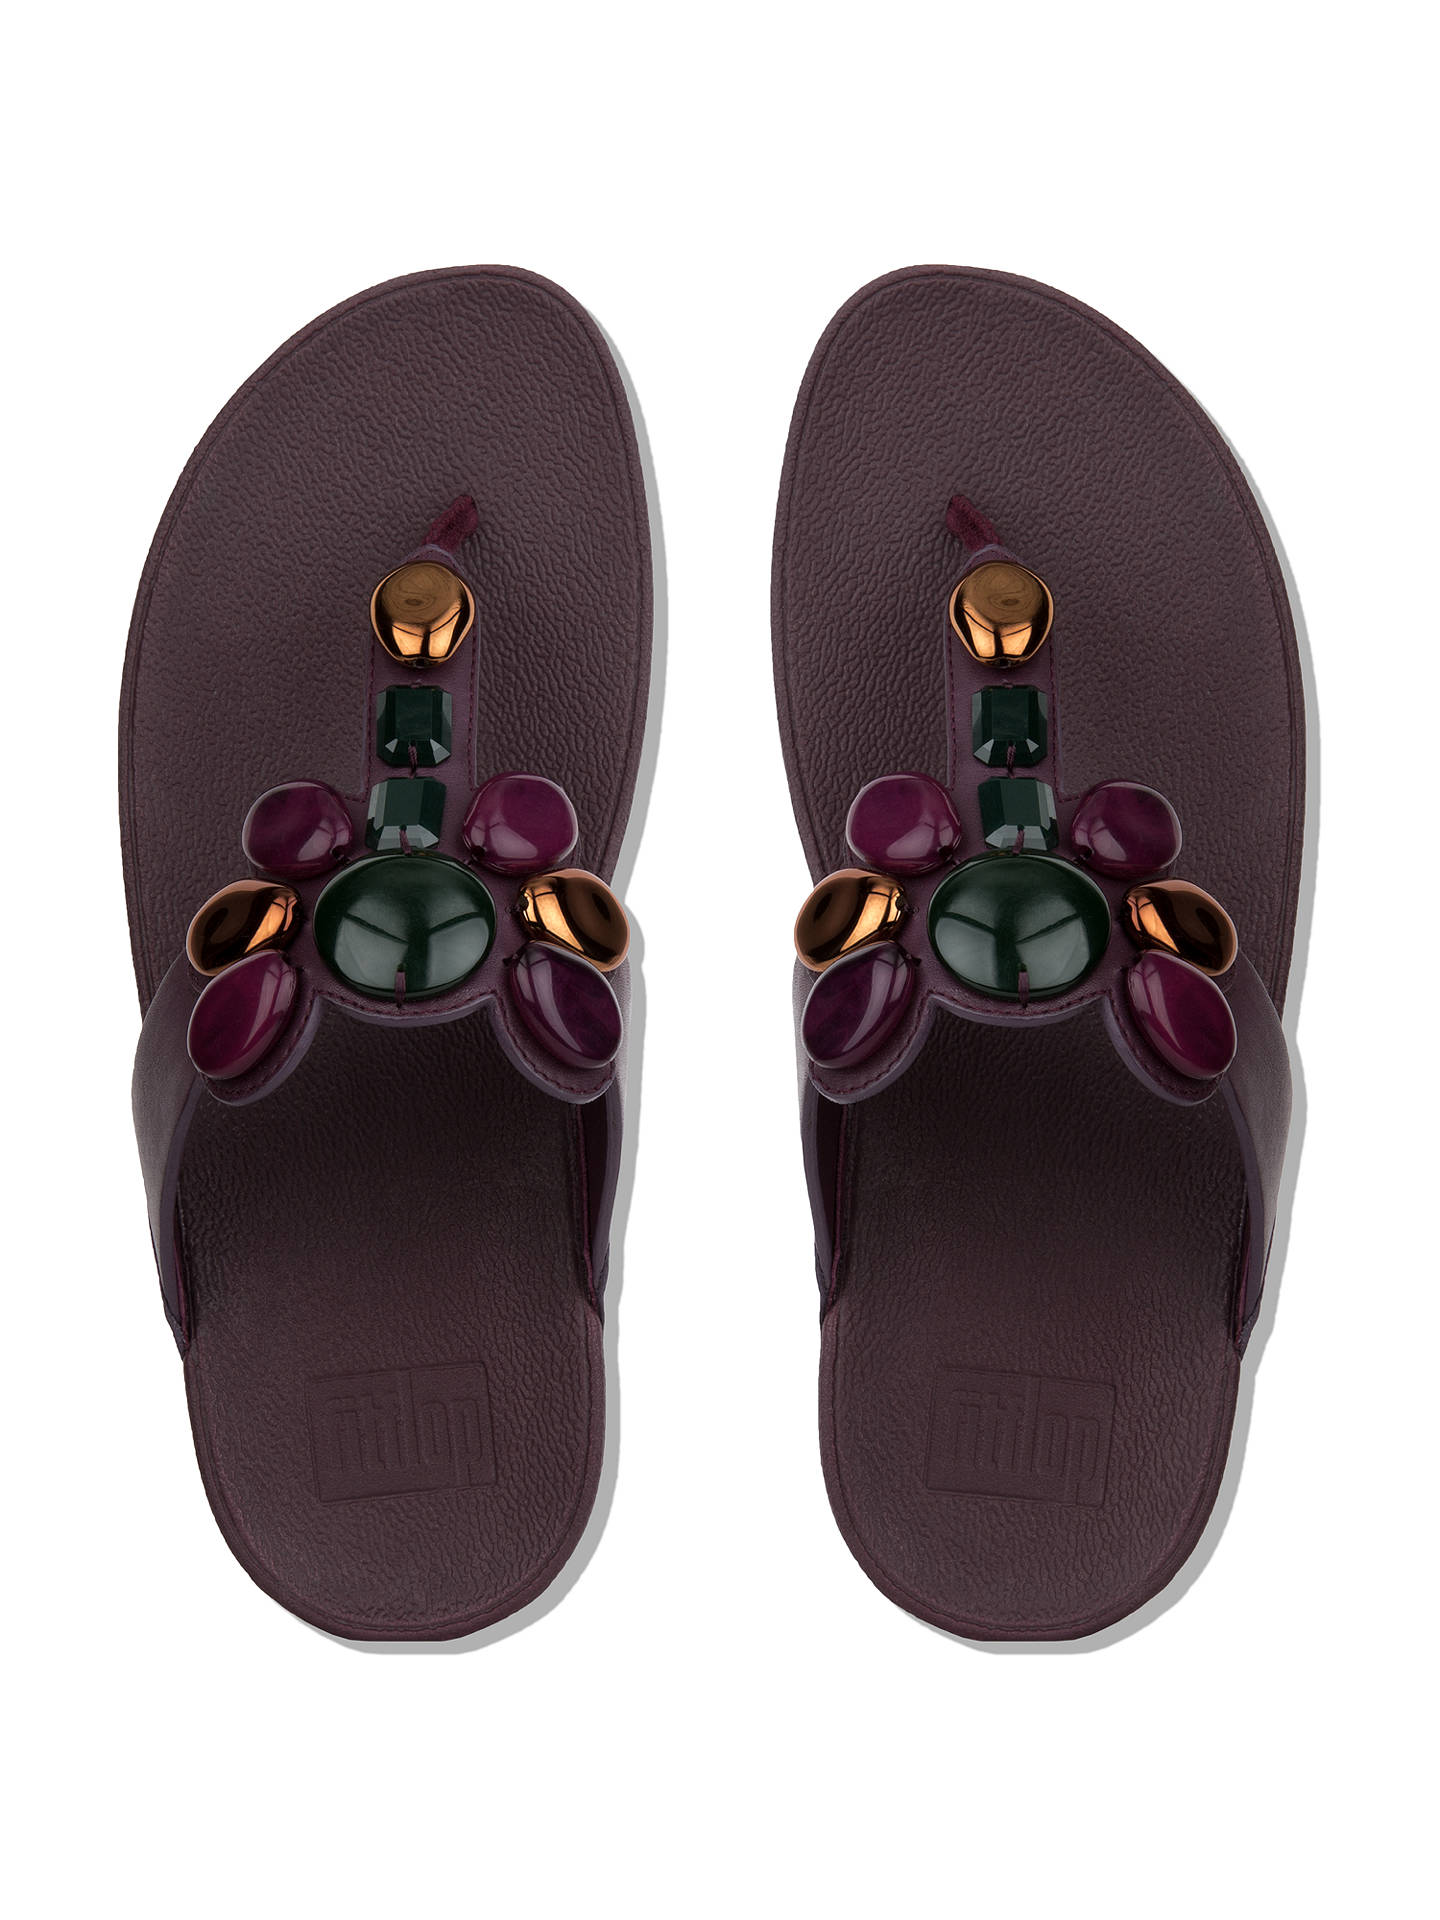 373641844fa ... Buy FitFlop Honeybee Jewelled Toe Post Sandals